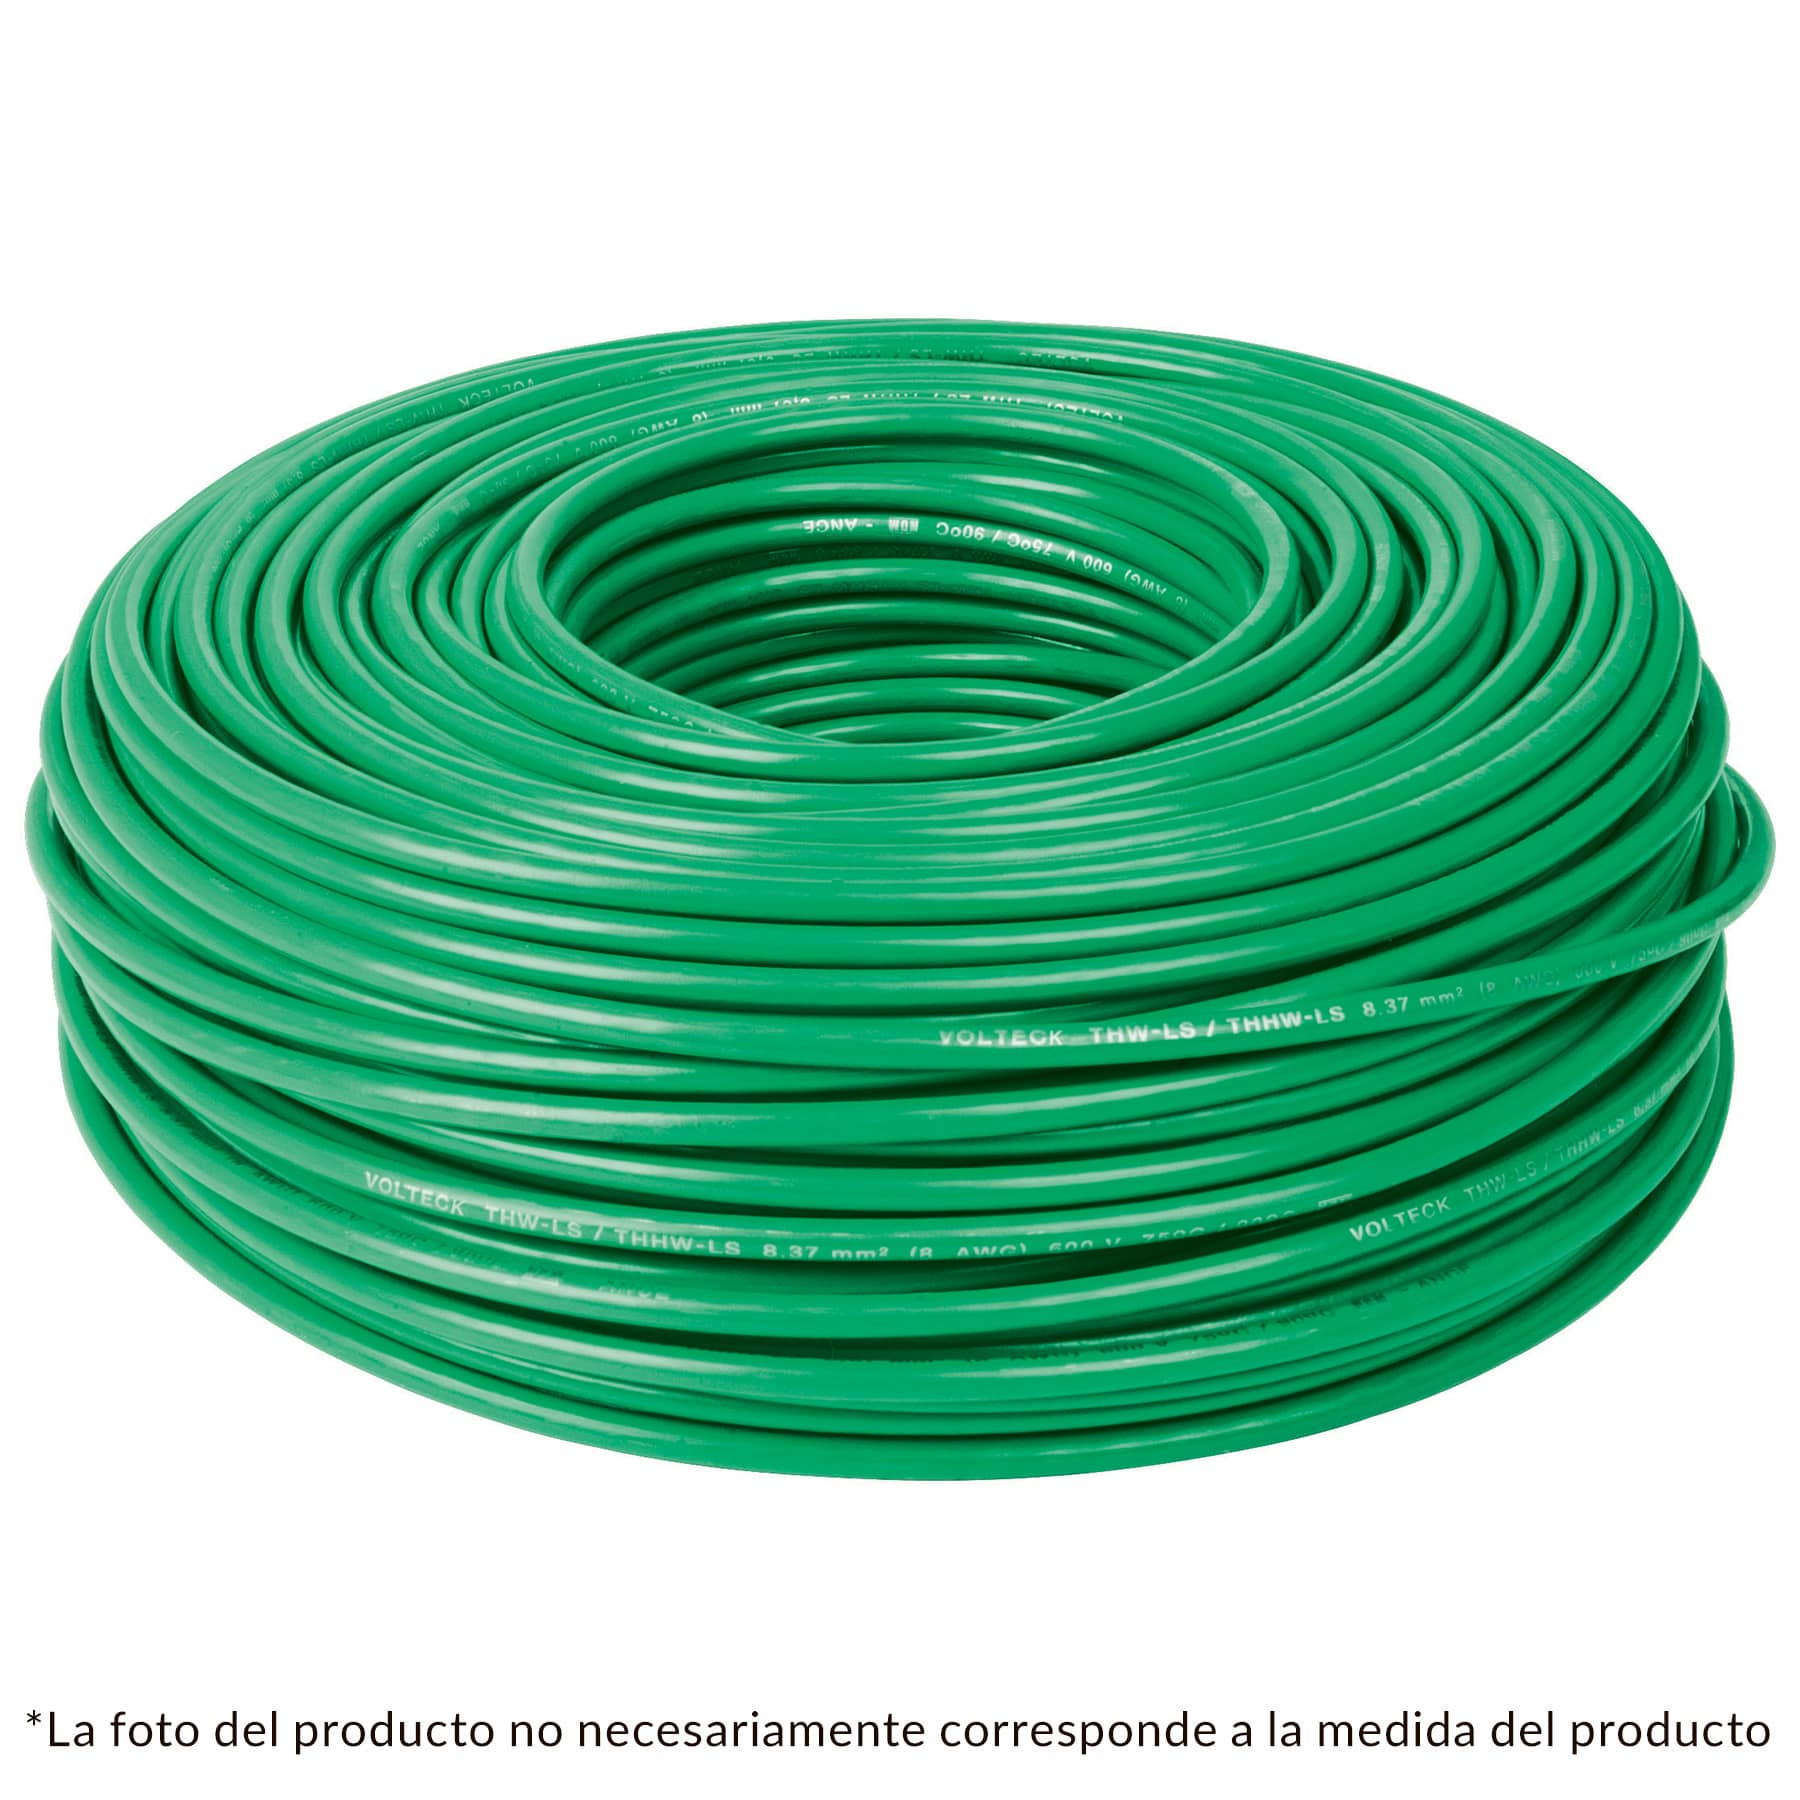 Cable THHW-LS, 14 AWG, color verde rollo 100 m